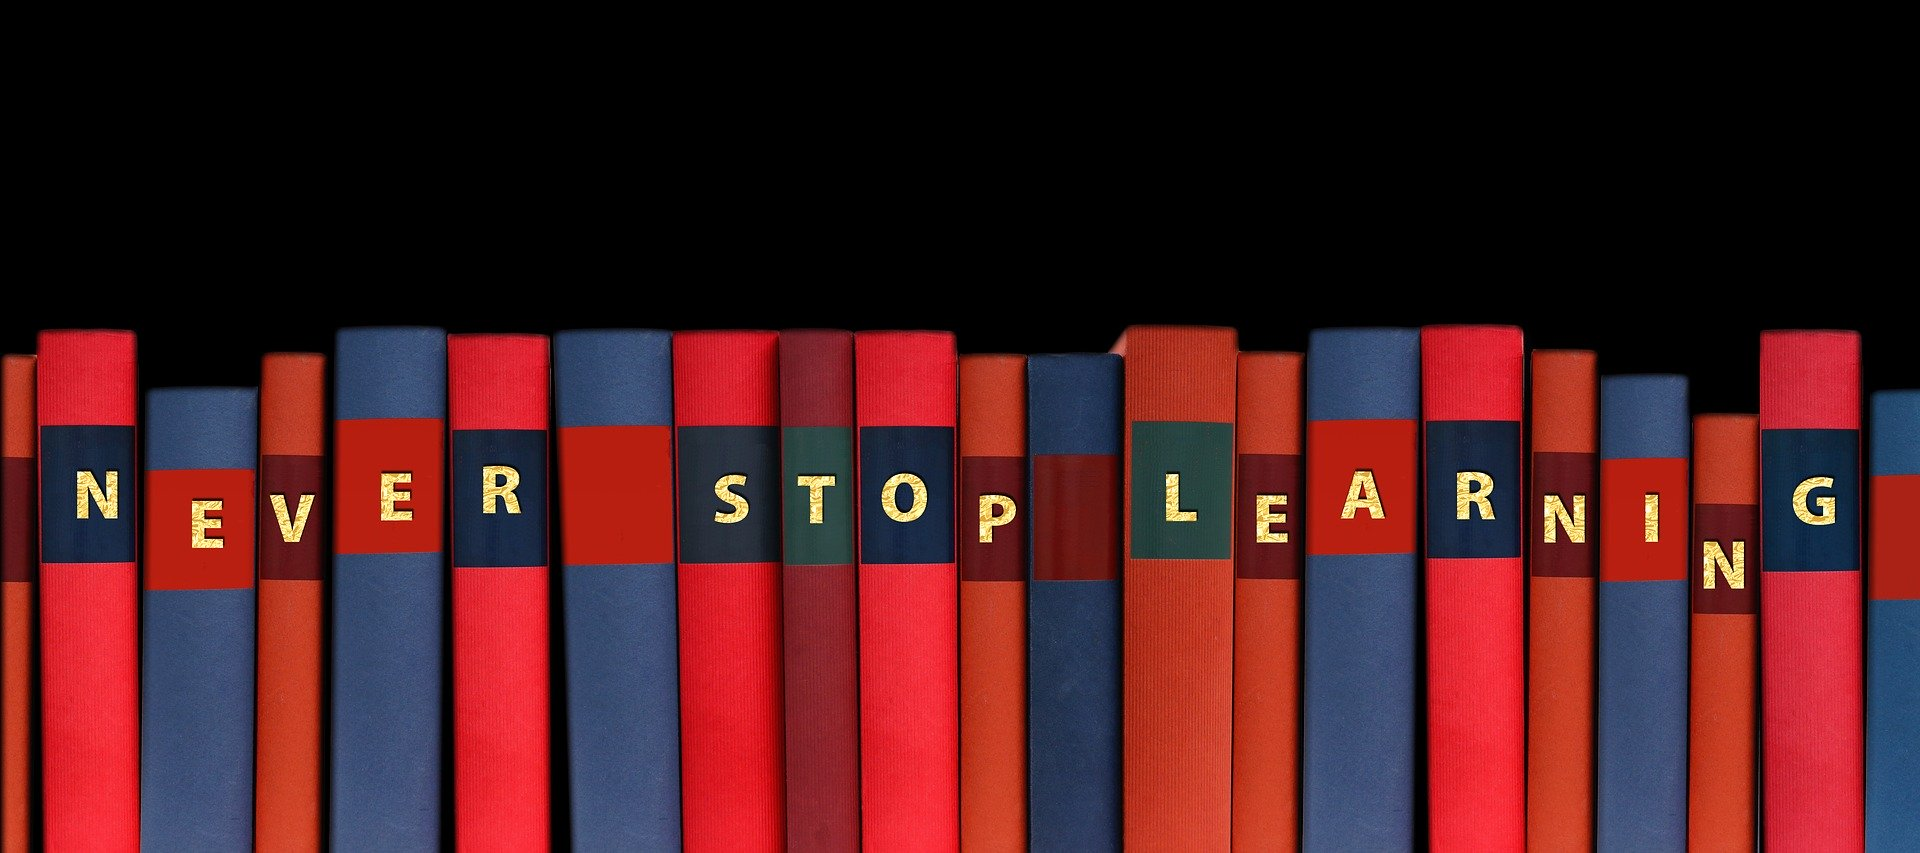 Never stop learning adult education